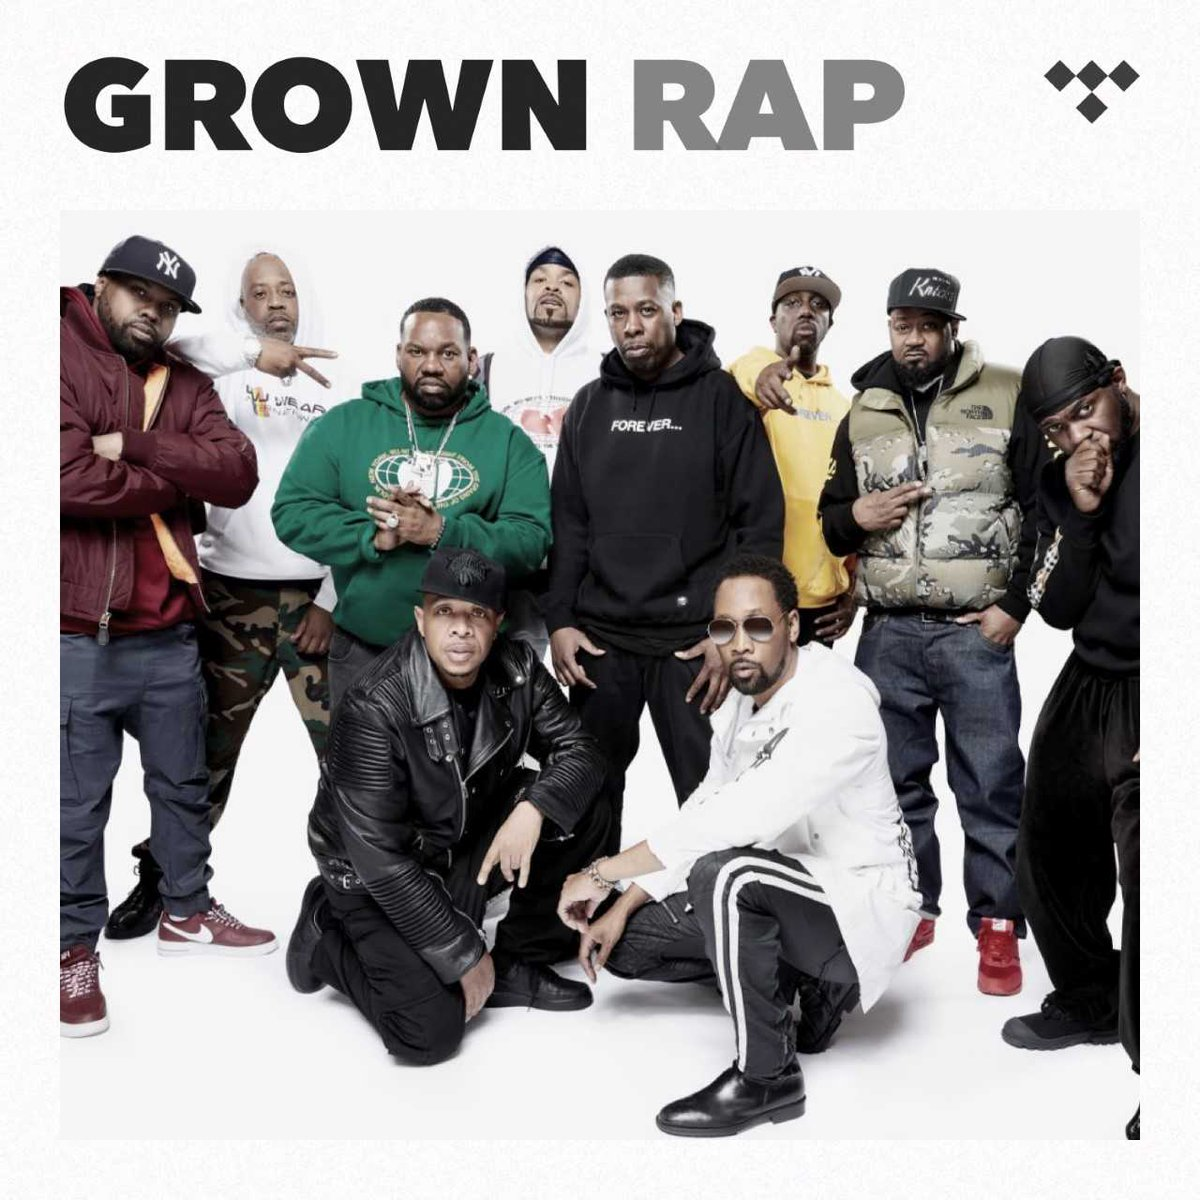 Catch the on the Grown Rap Playlist from @Tidal! The Wu-Tang slang is mad dangerous ... tidal.com/browse/playlis…